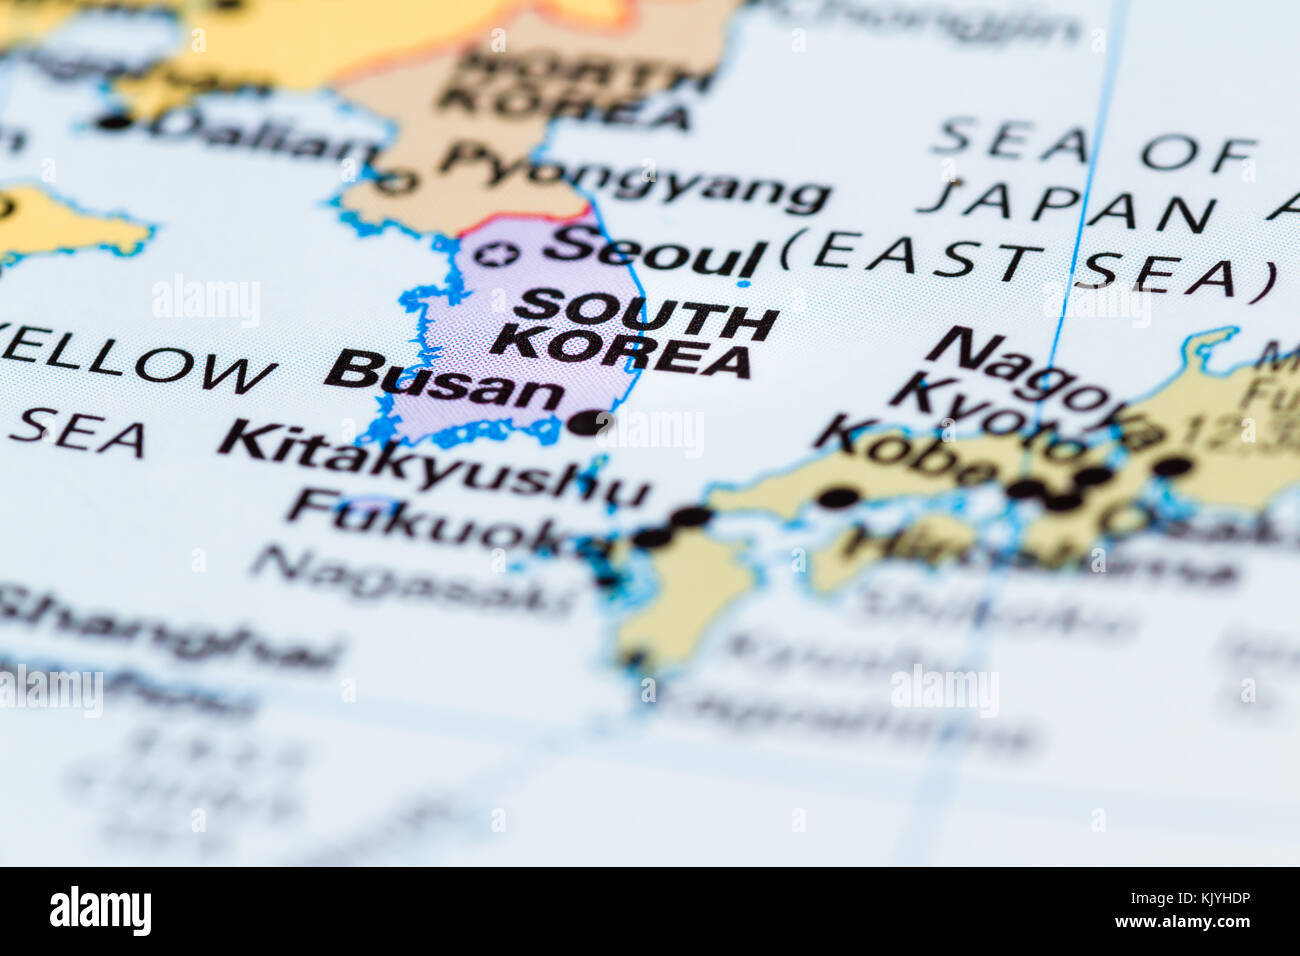 Close up of a world map with south korea in focus stock photo close up of a world map with south korea in focus gumiabroncs Gallery